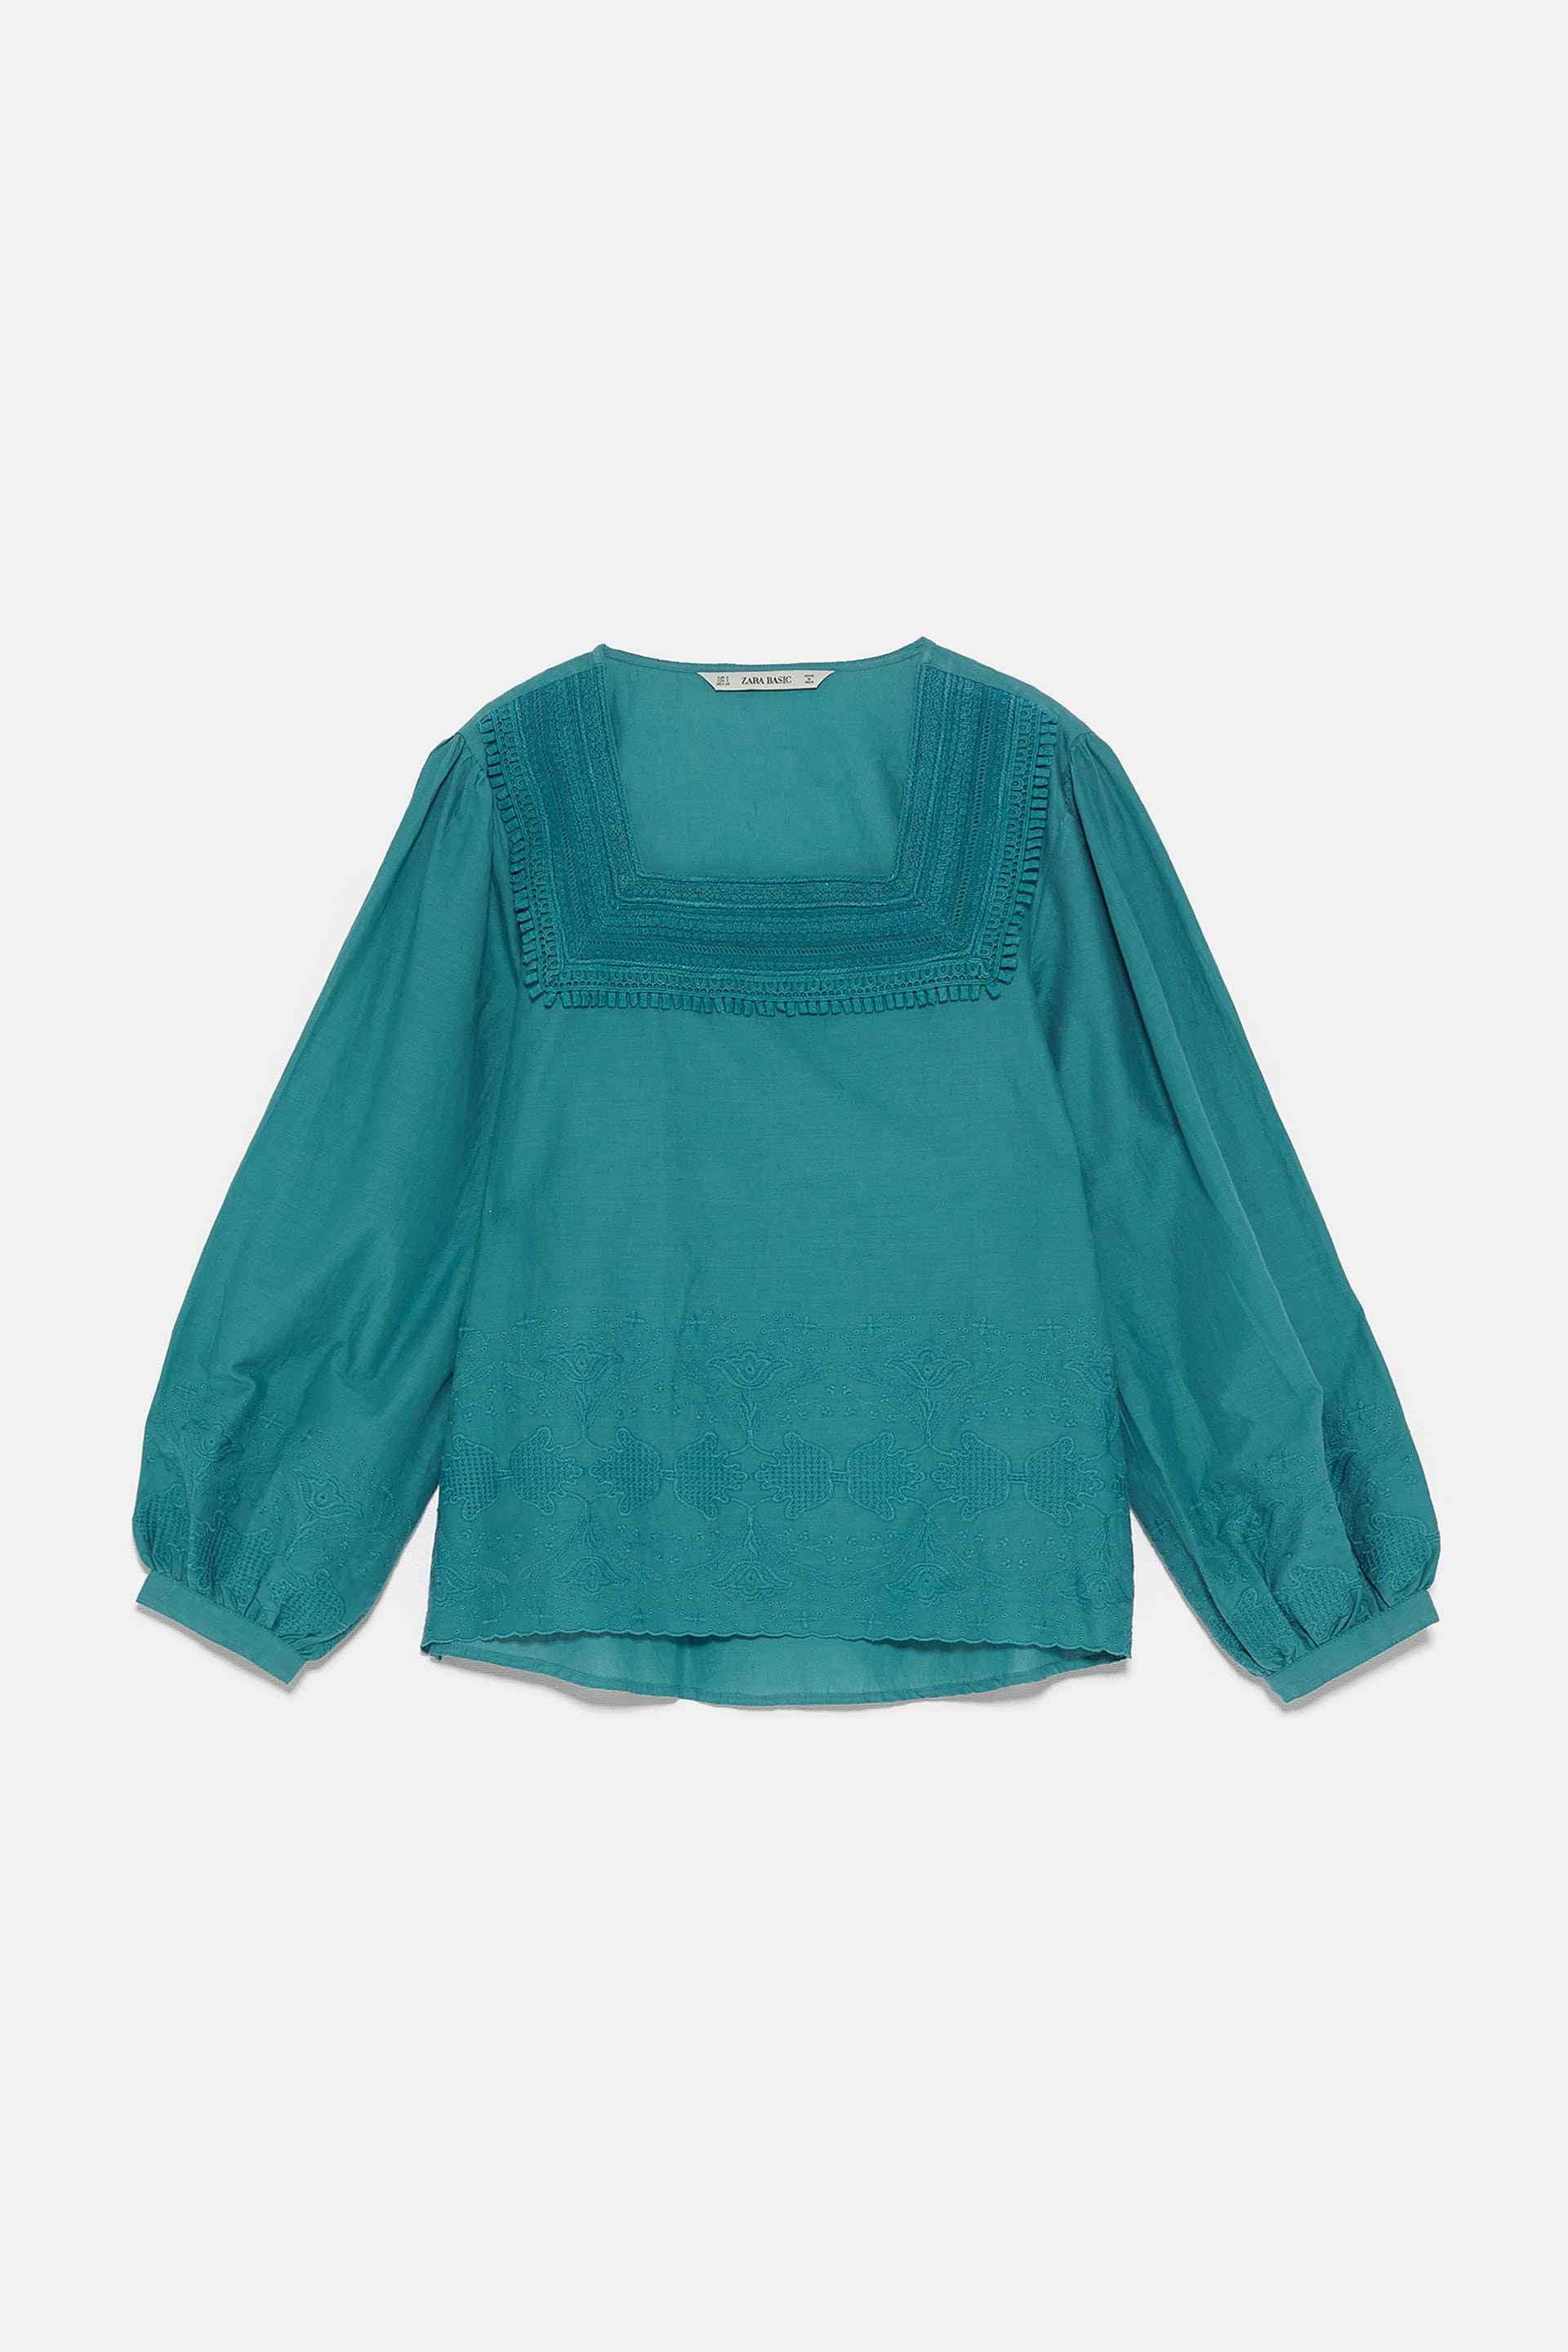 EMBROIDERED TOP - View All-SHIRTS | BLOUSES-WOMAN | ZARA United States